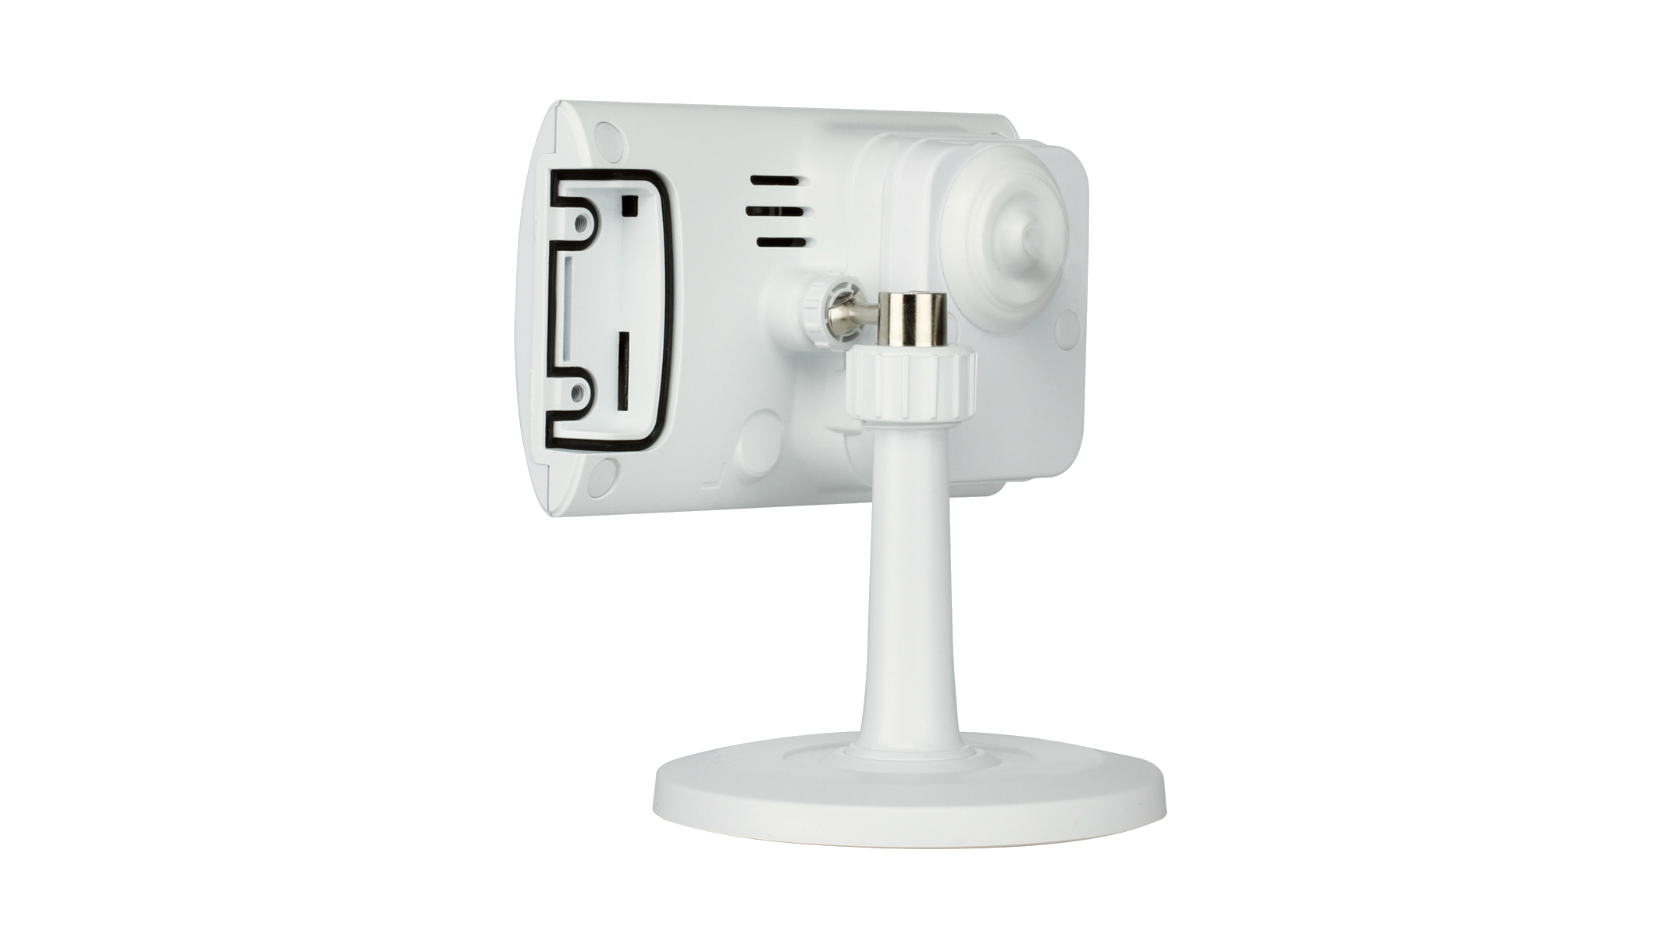 D-LINK DCS-2310L NETWORK CAMERA DRIVER FOR WINDOWS 8